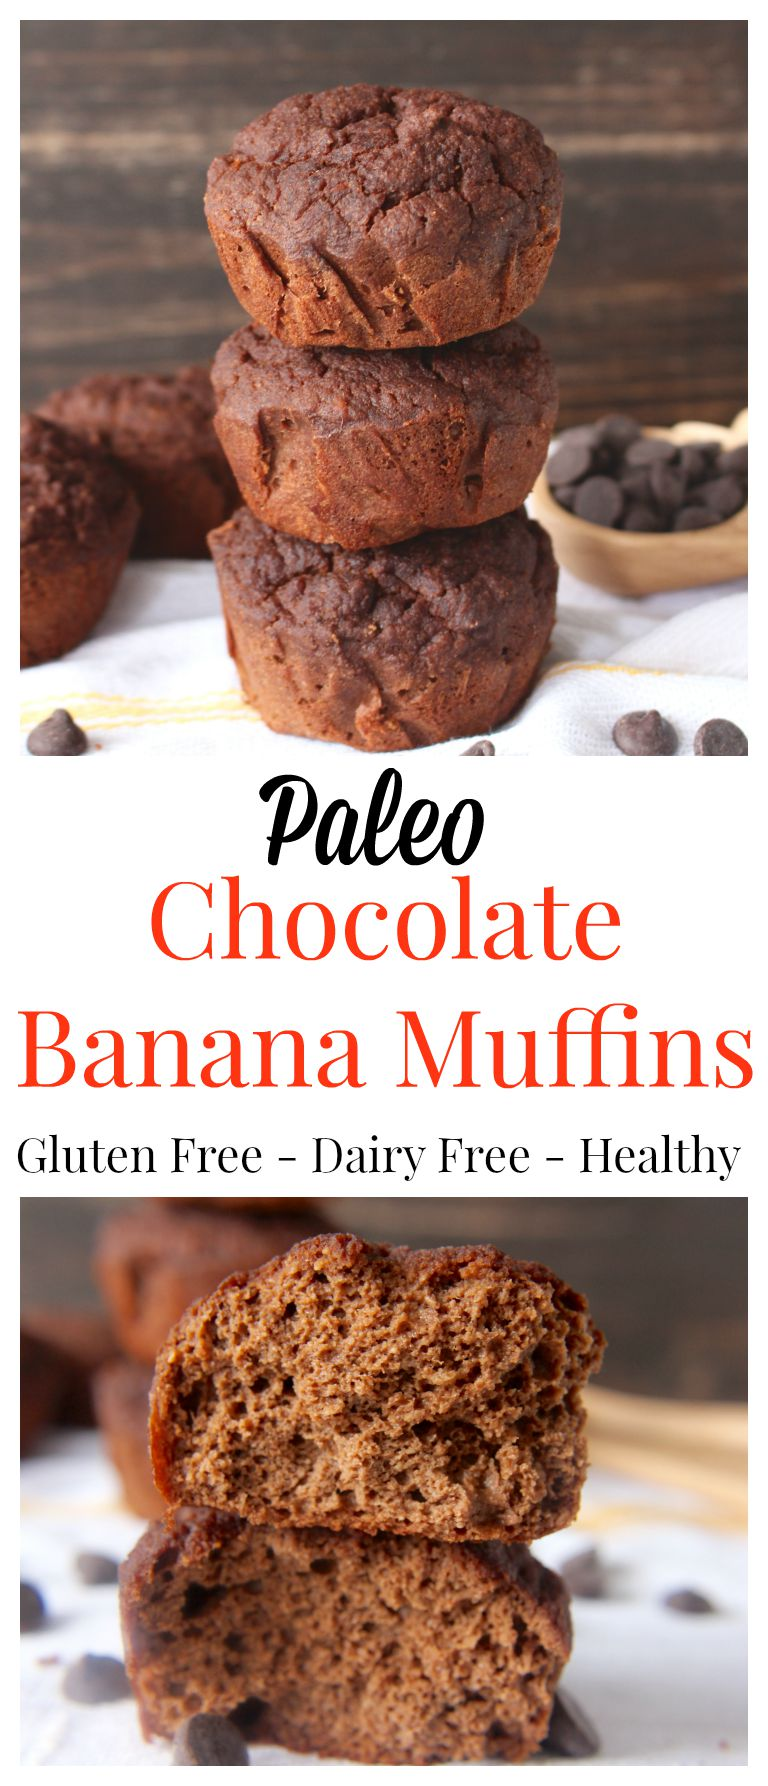 Paleo Chocolate Banana Muffins